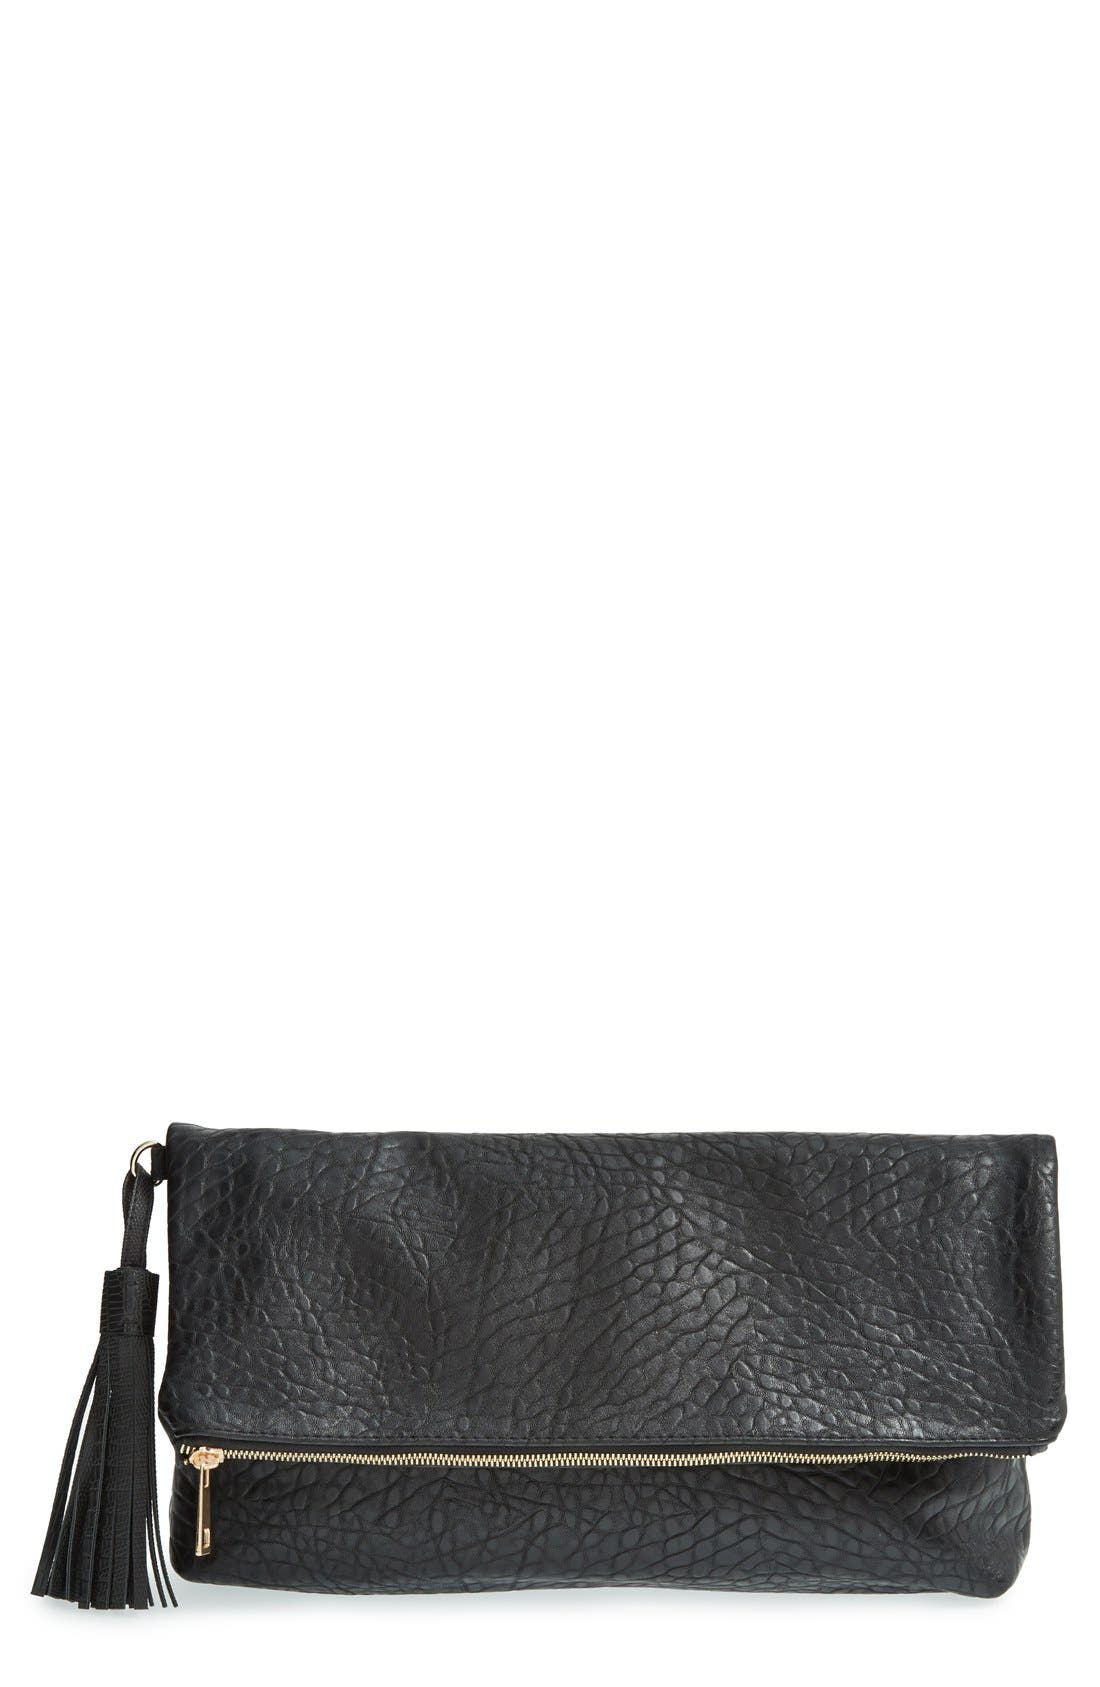 Main Image - Topshop 'Merino' Faux Leather Foldover Clutch